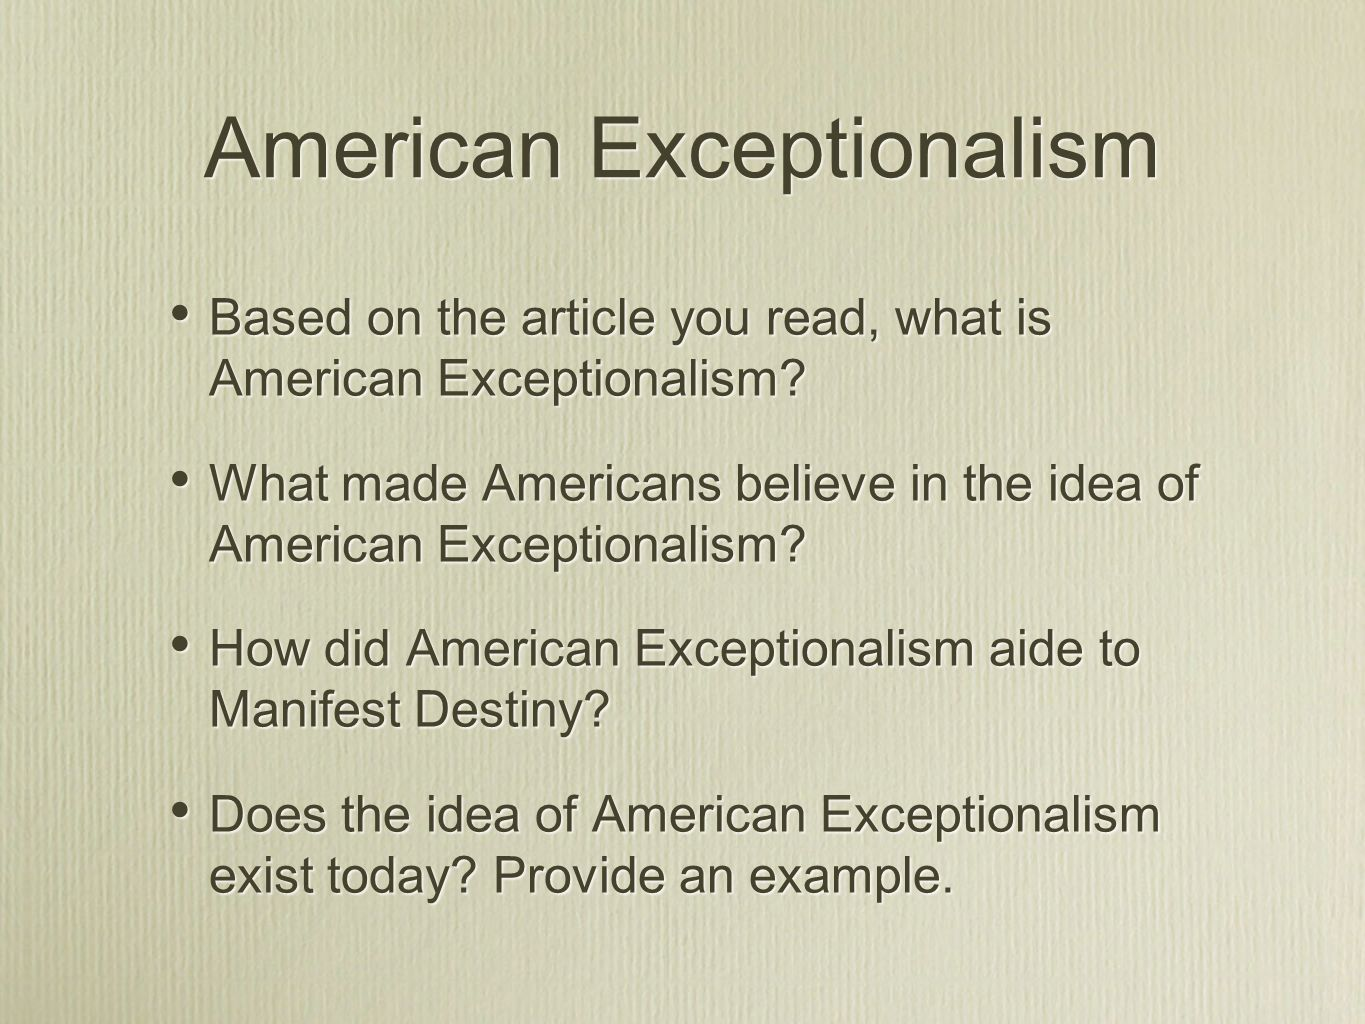 american exceptionalism essay question Americans' exceptionalism is america's problem, not so much because americans are that different from others, but because any dissimilarity in attitudes or values is magnified by the united states' place in the world, and others often resent those differences.